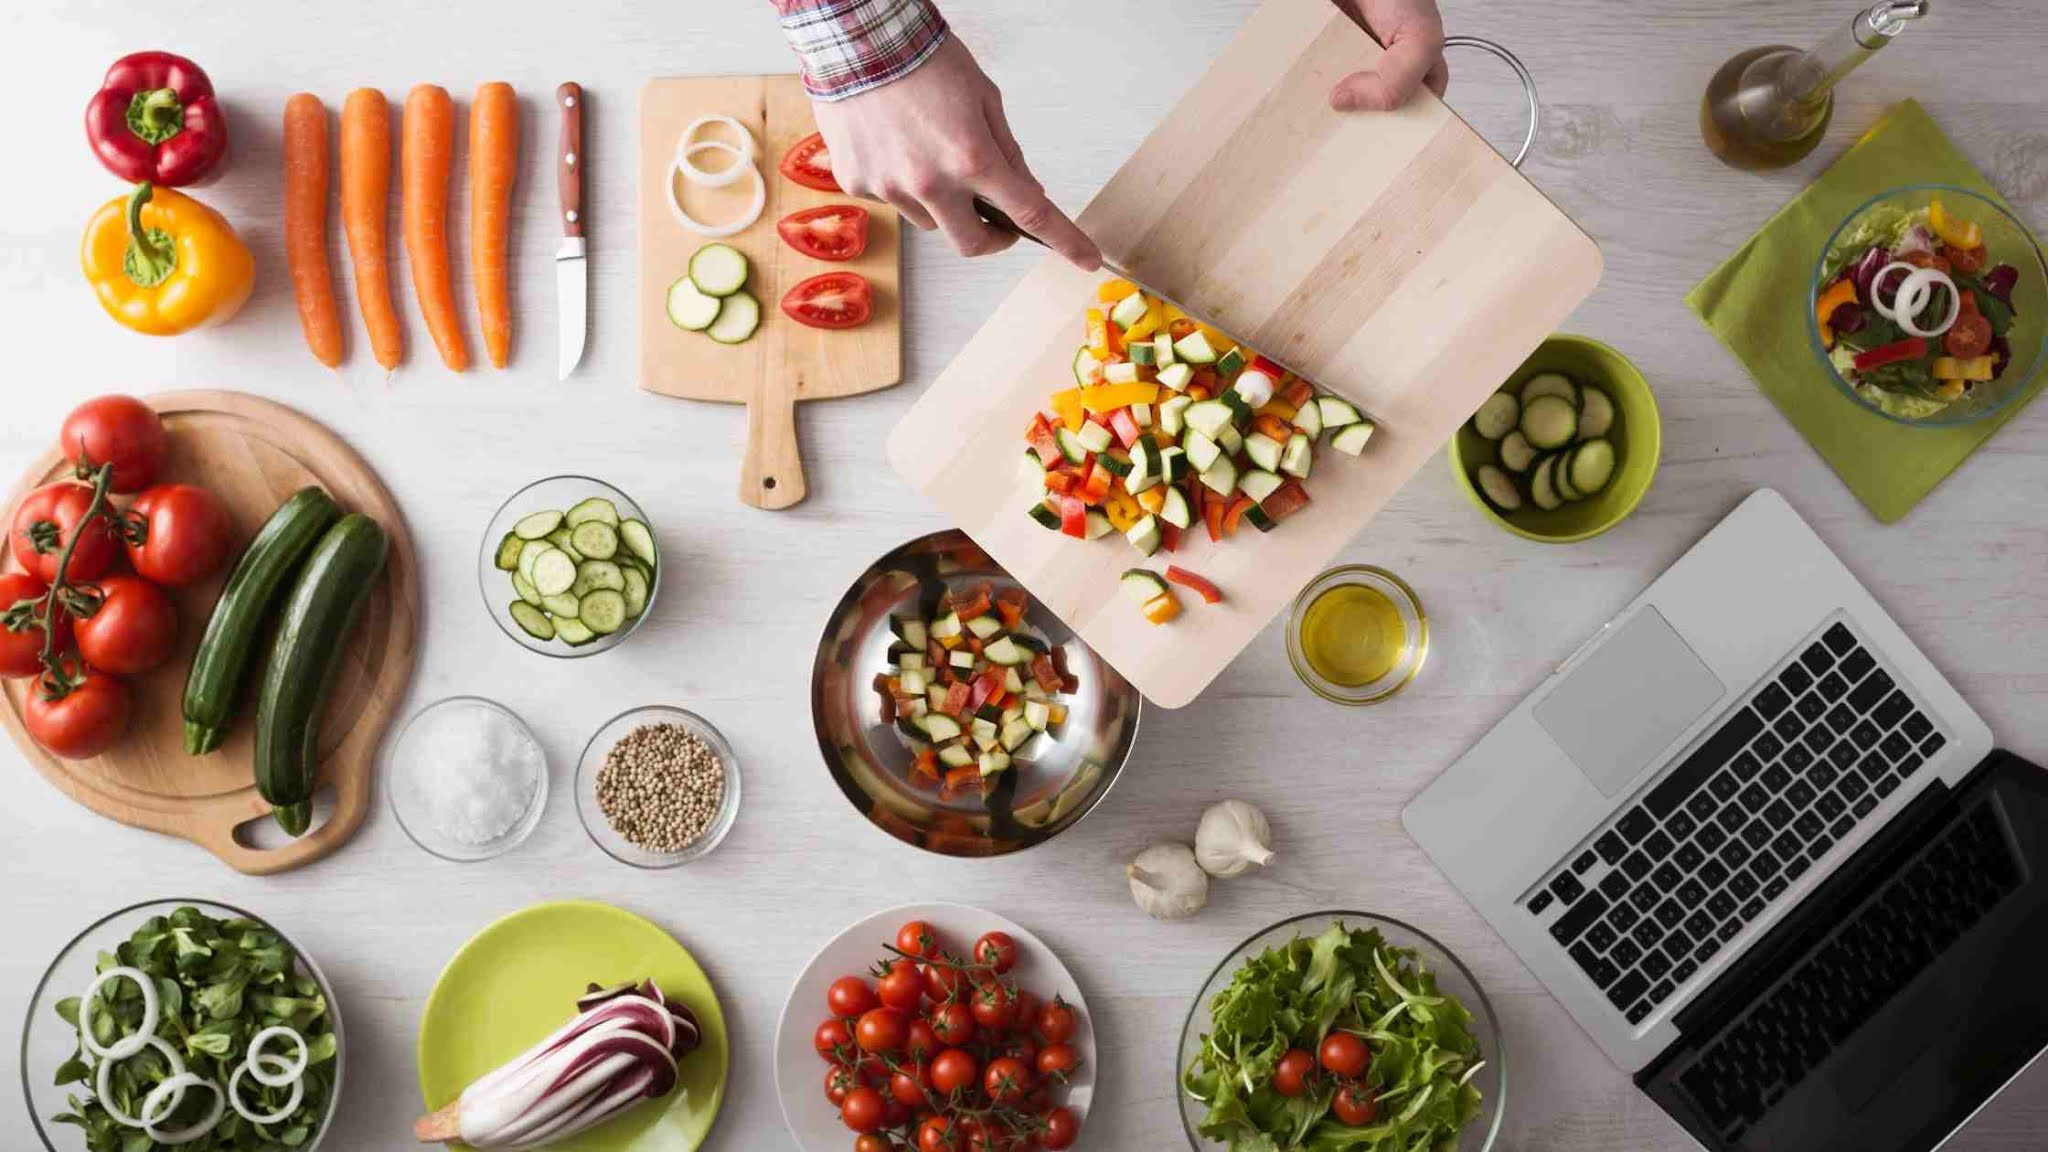 What are the benefits of a ketogenic diet